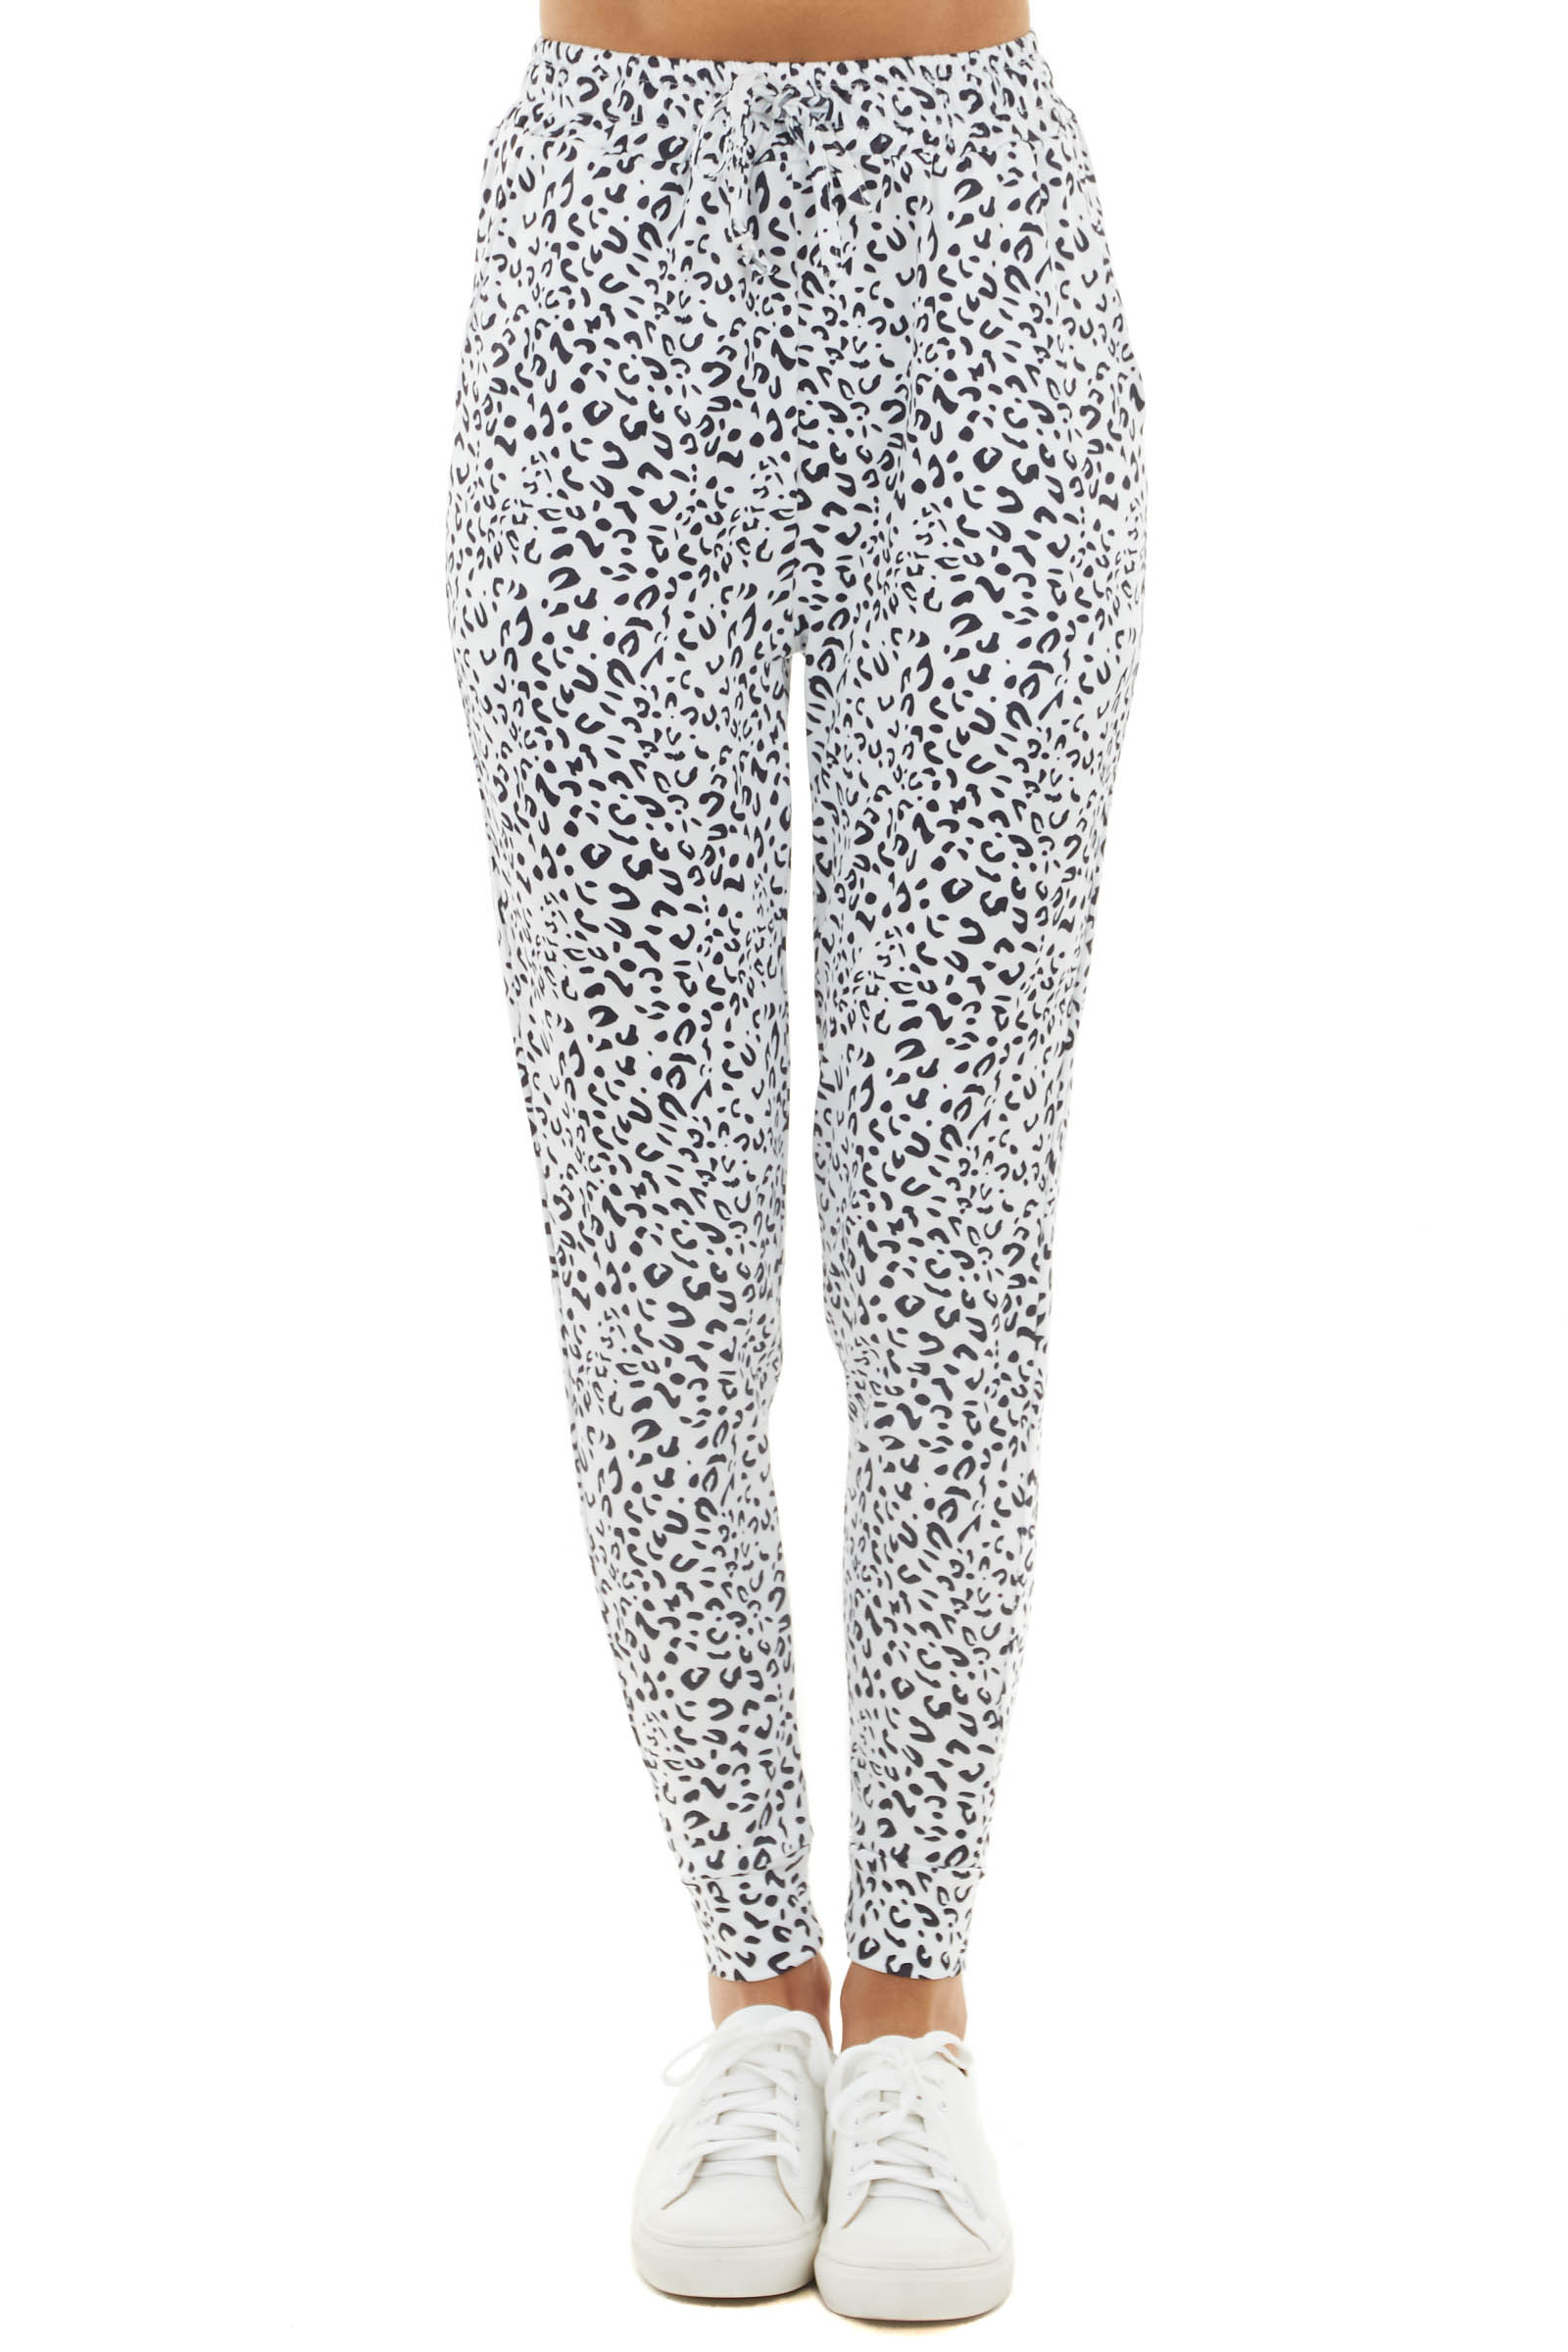 Pearl White Leopard Print Joggers with Side Pockets